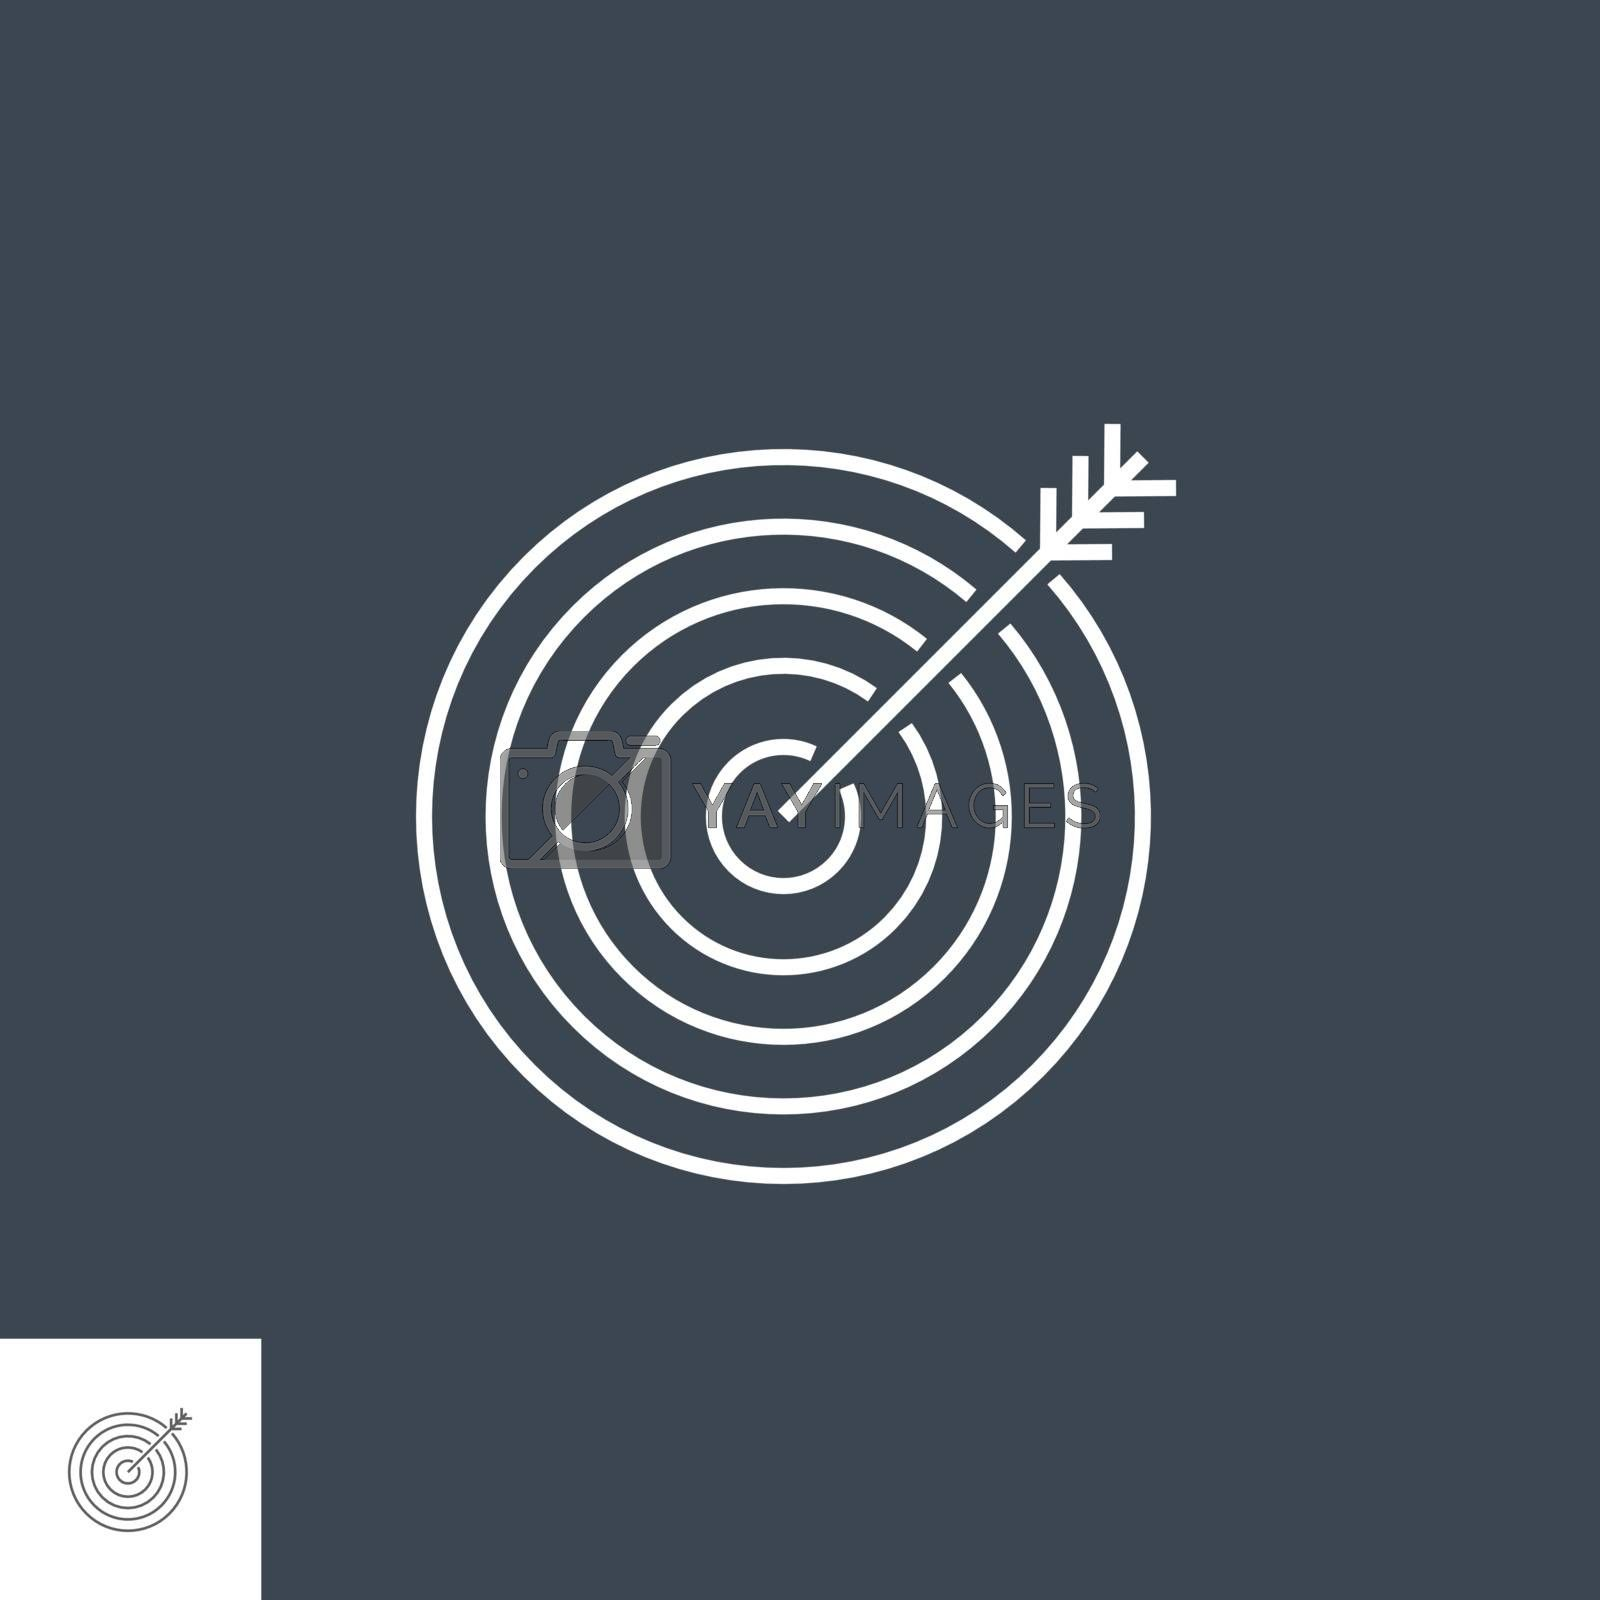 Keyword Targeting Related Vector Thin Line Icon. Isolated on Black Background. Editable Stroke. Vector Illustration.